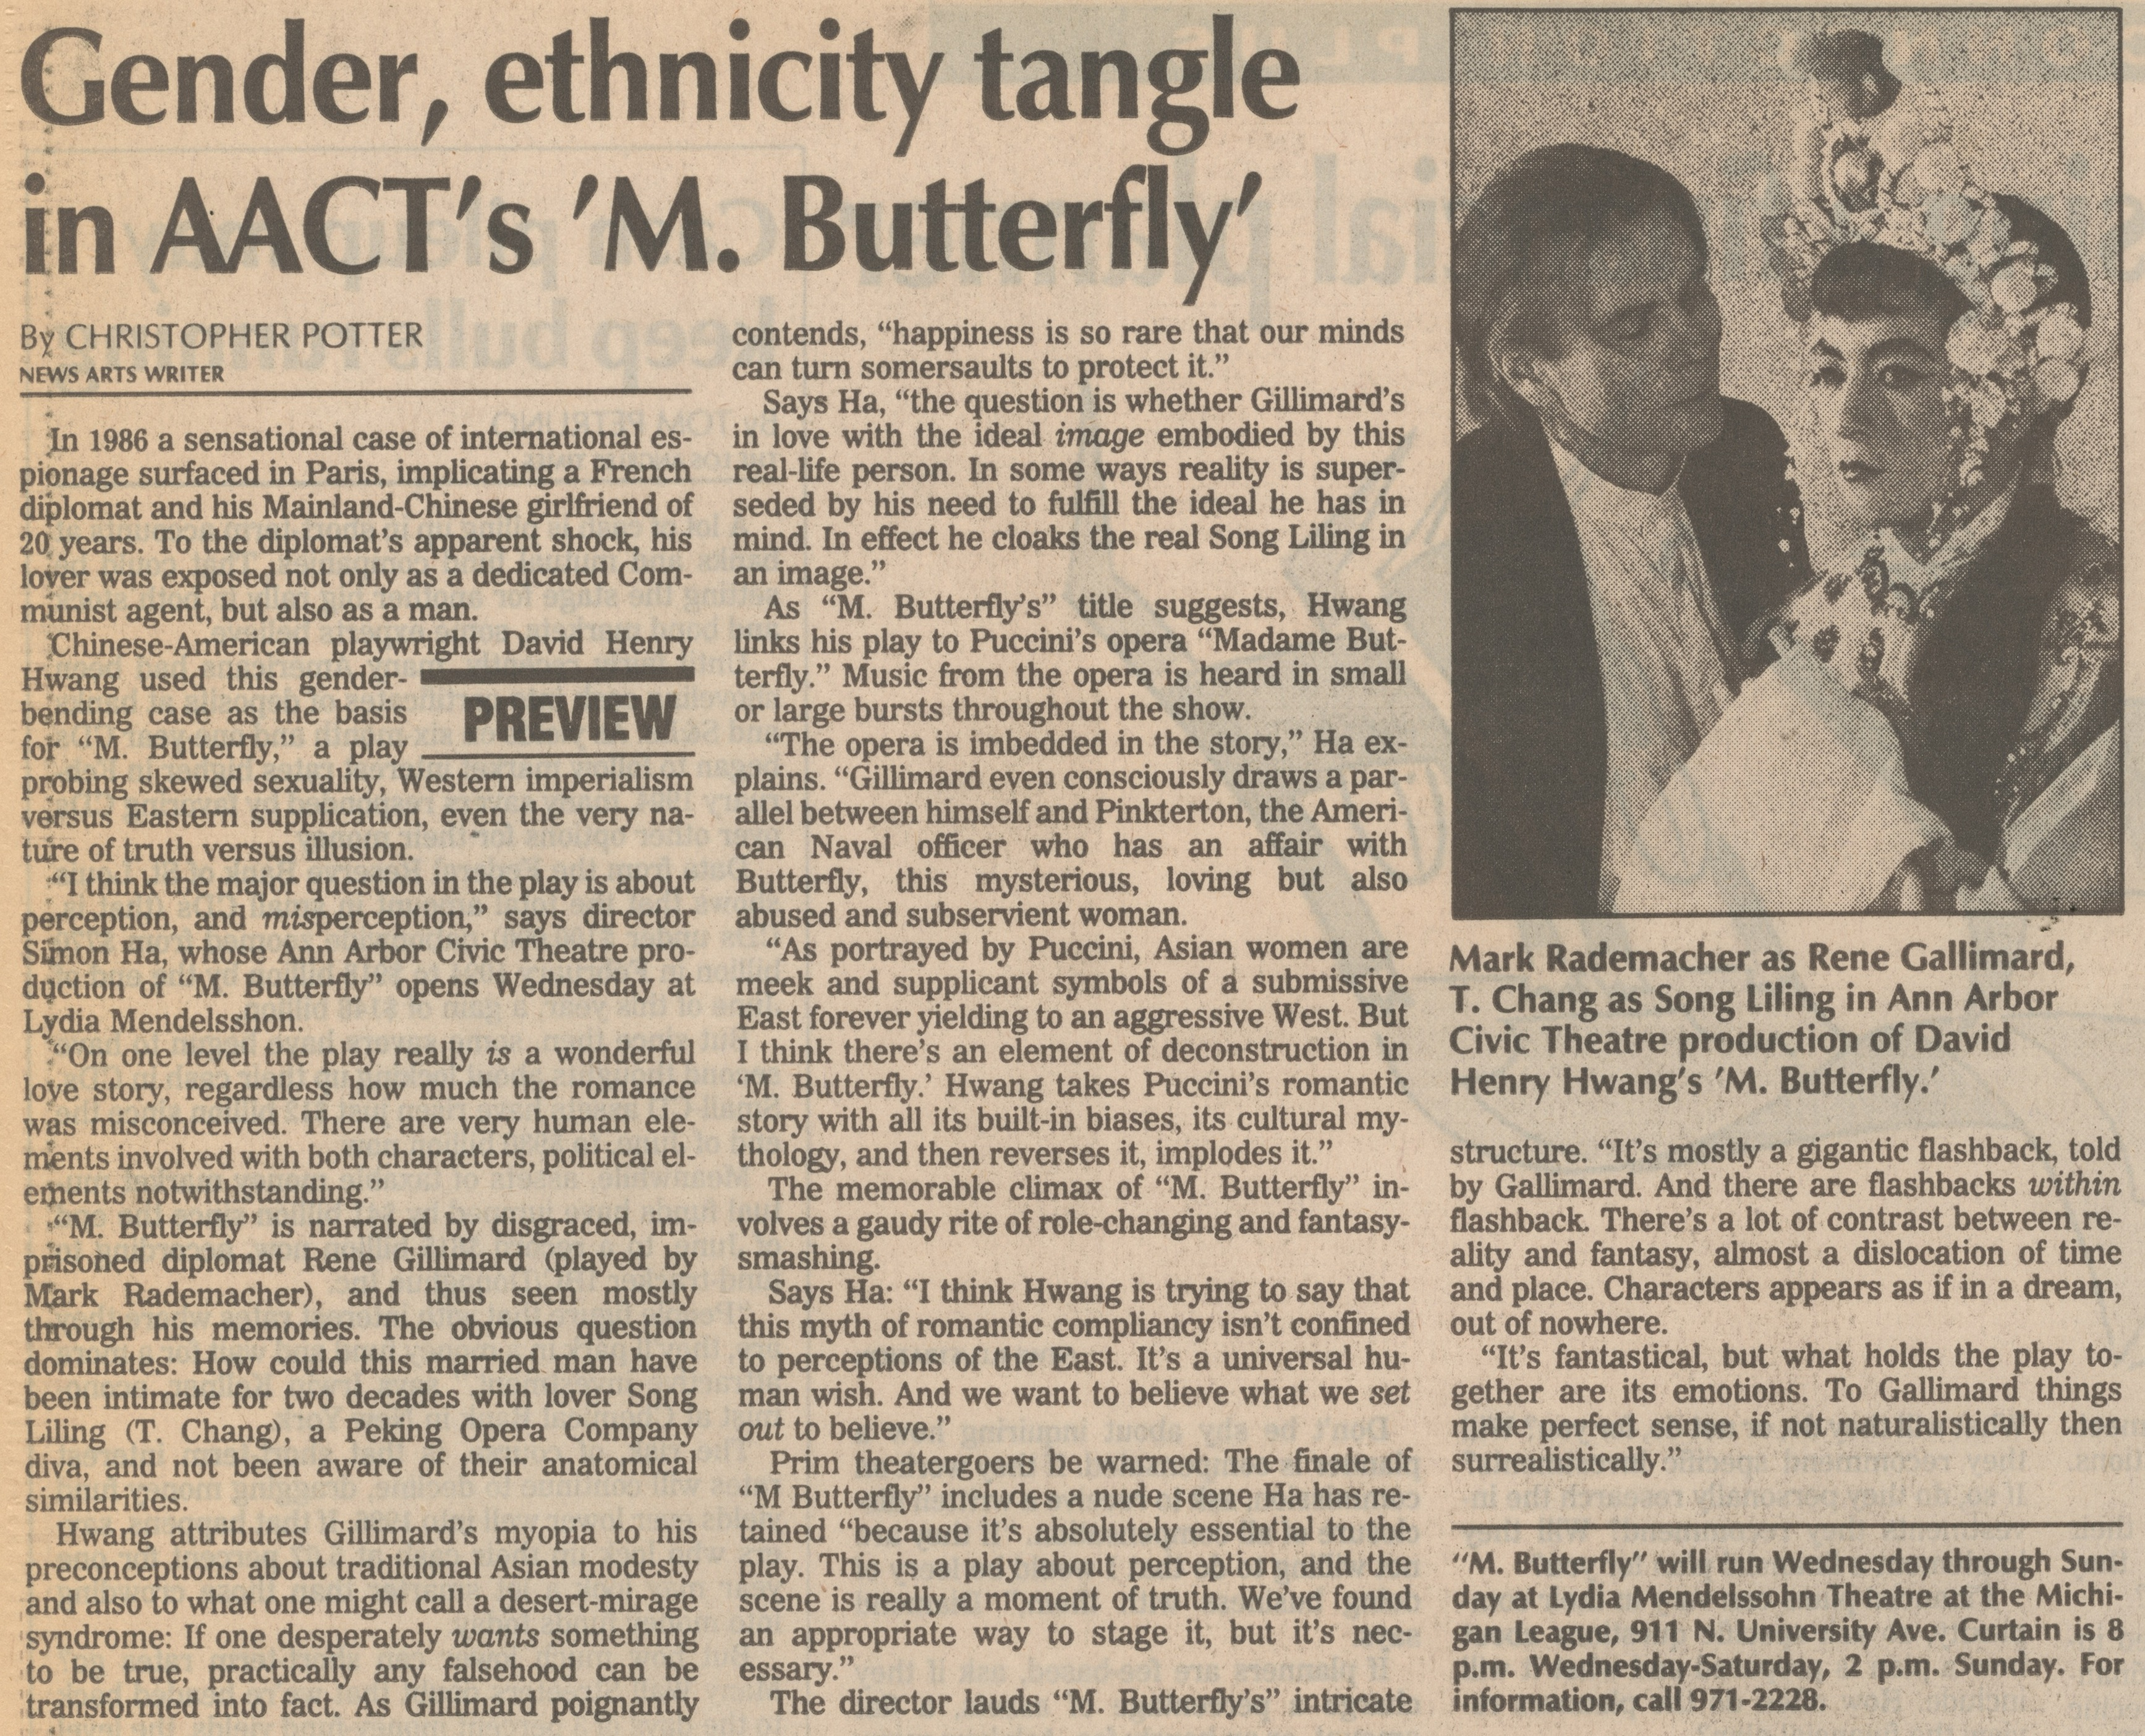 Gender, Ethnicity Tangle In AACT's 'M. Butterfly' image